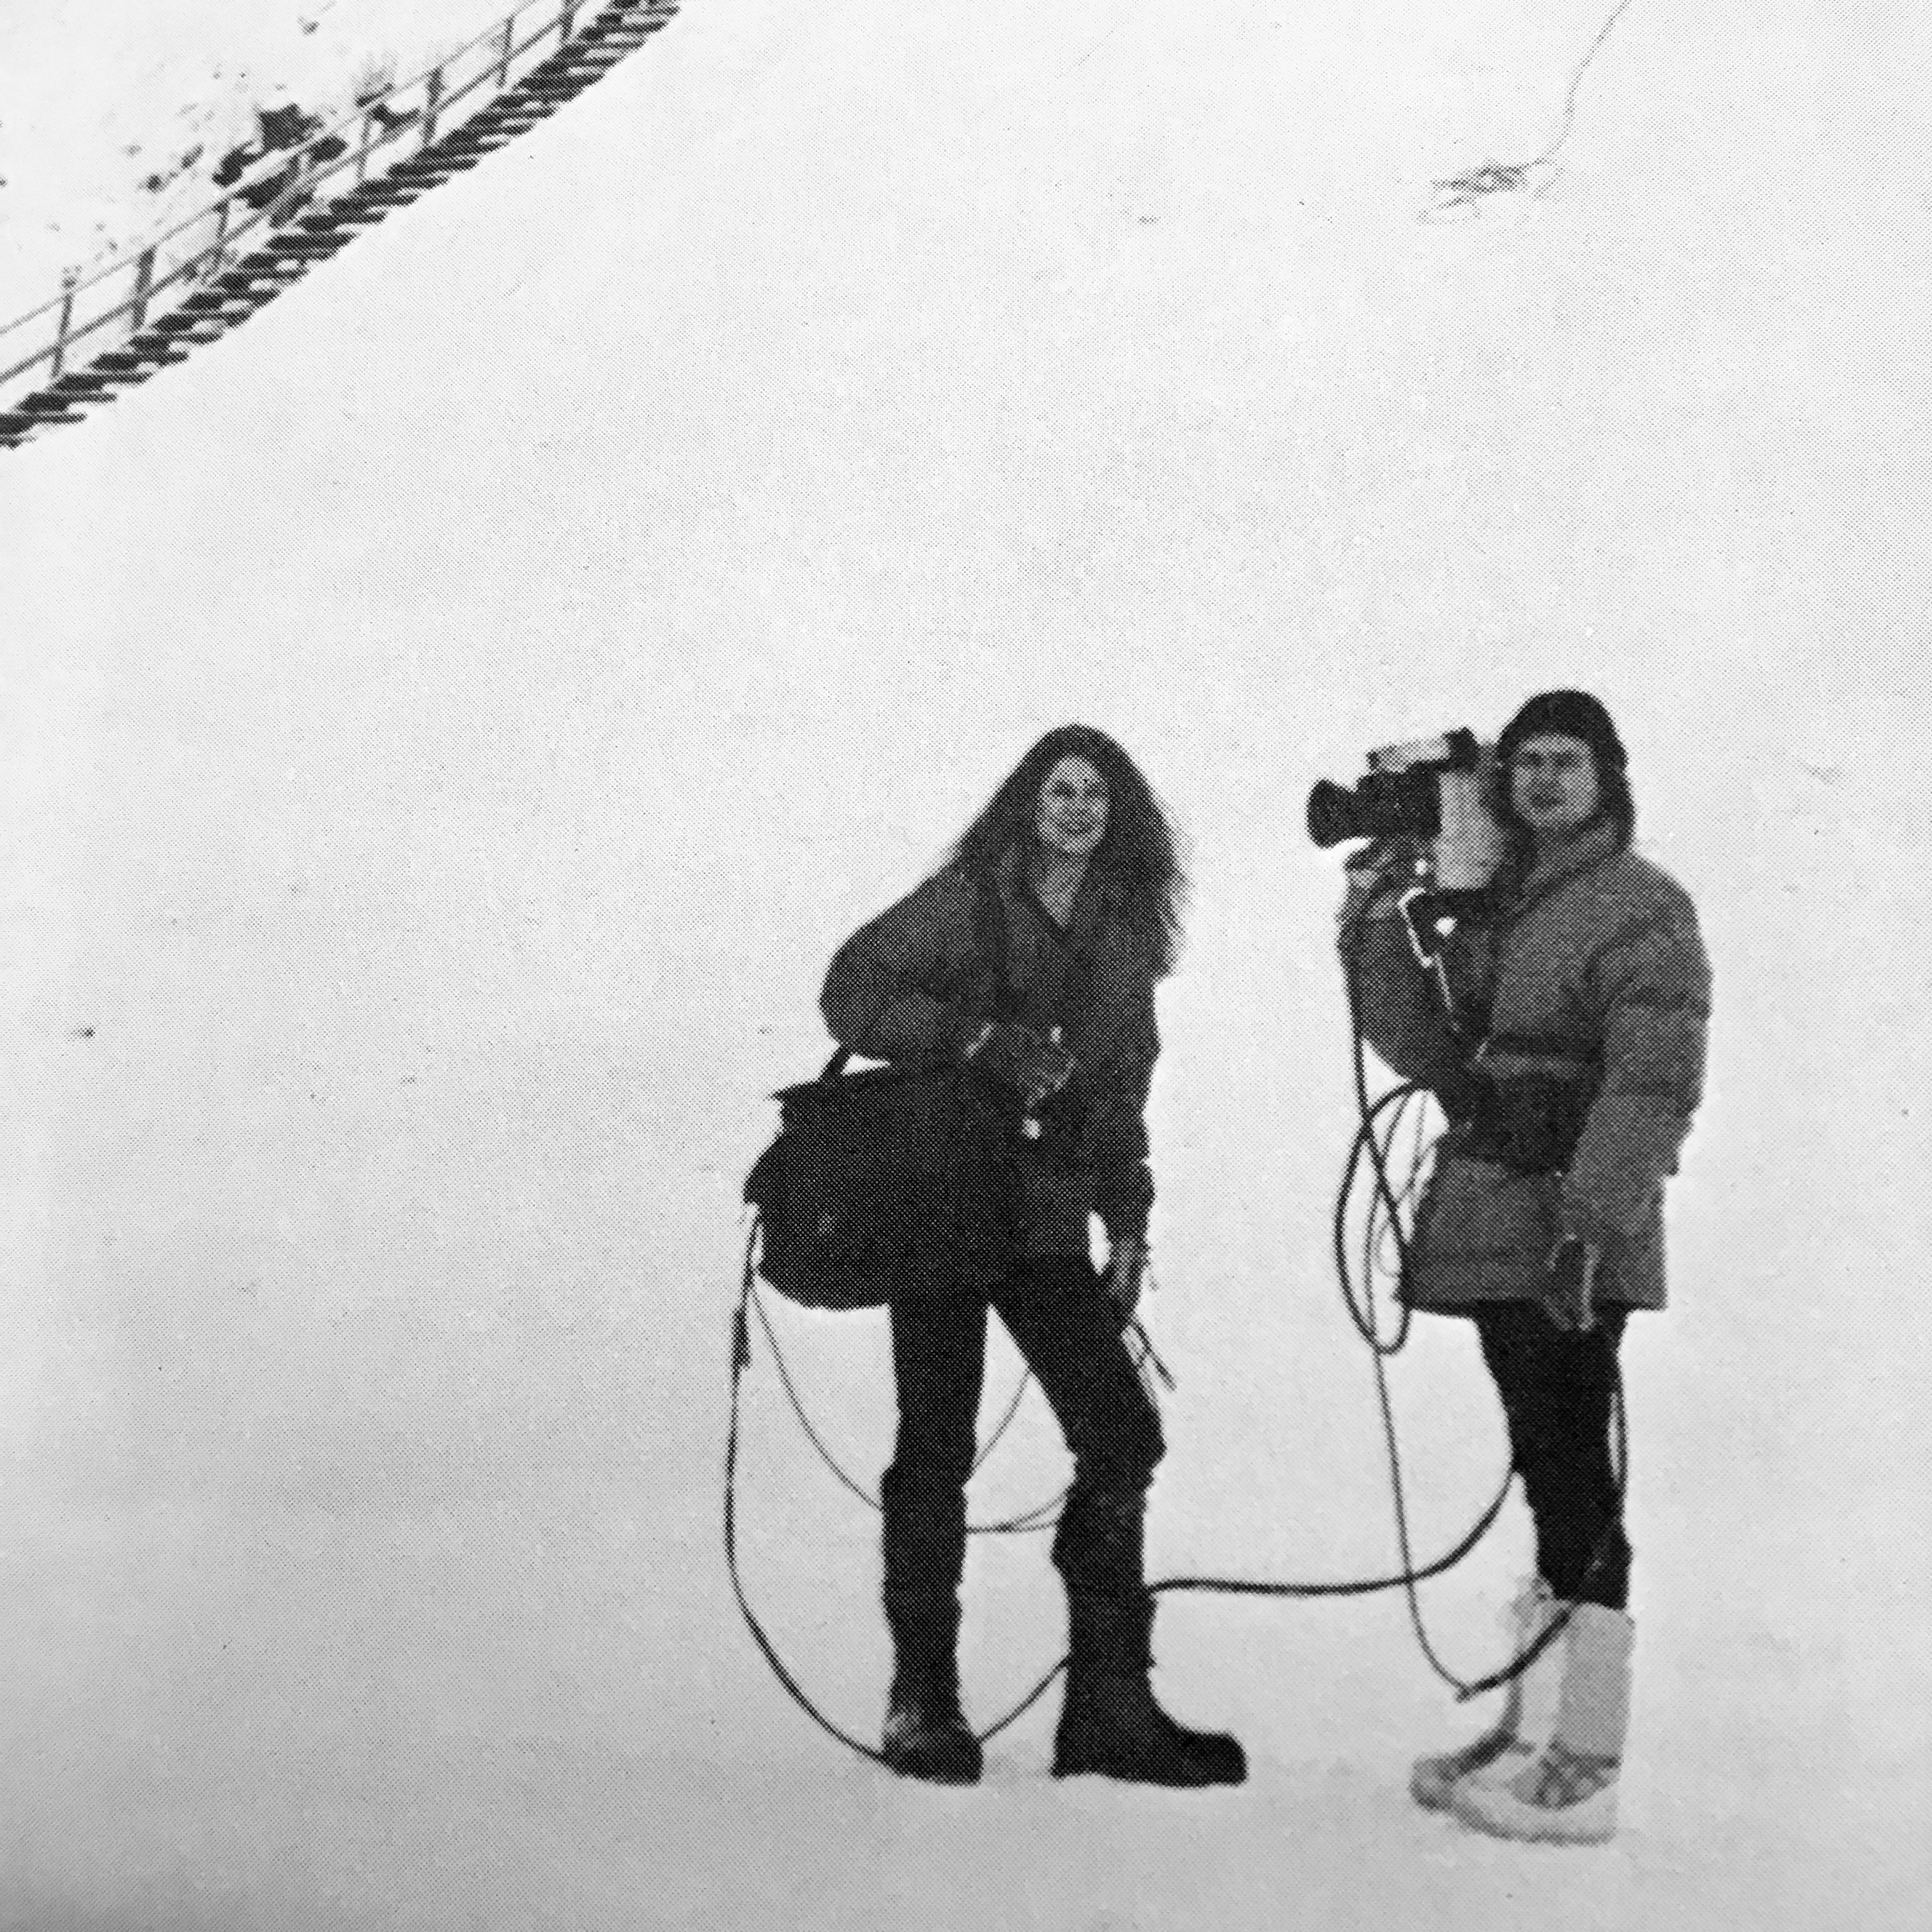 Filming winter Olympics